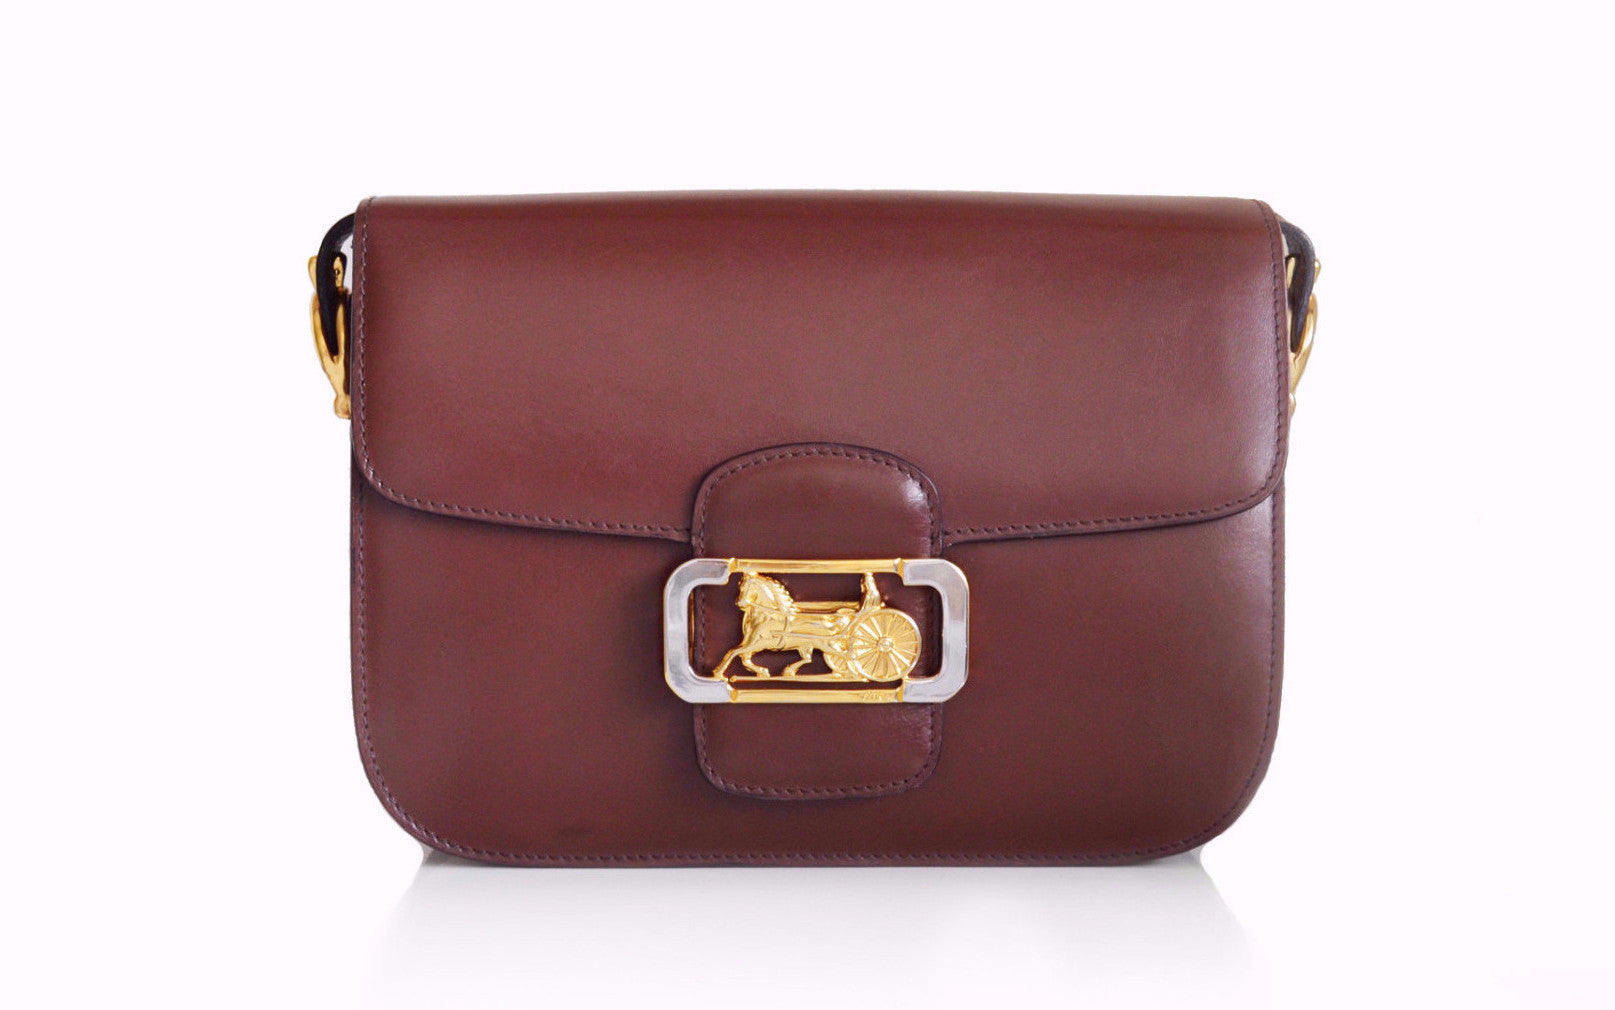 042d607668 CELINE VINTAGE BAG - Classic Box in Brown - Vintage District